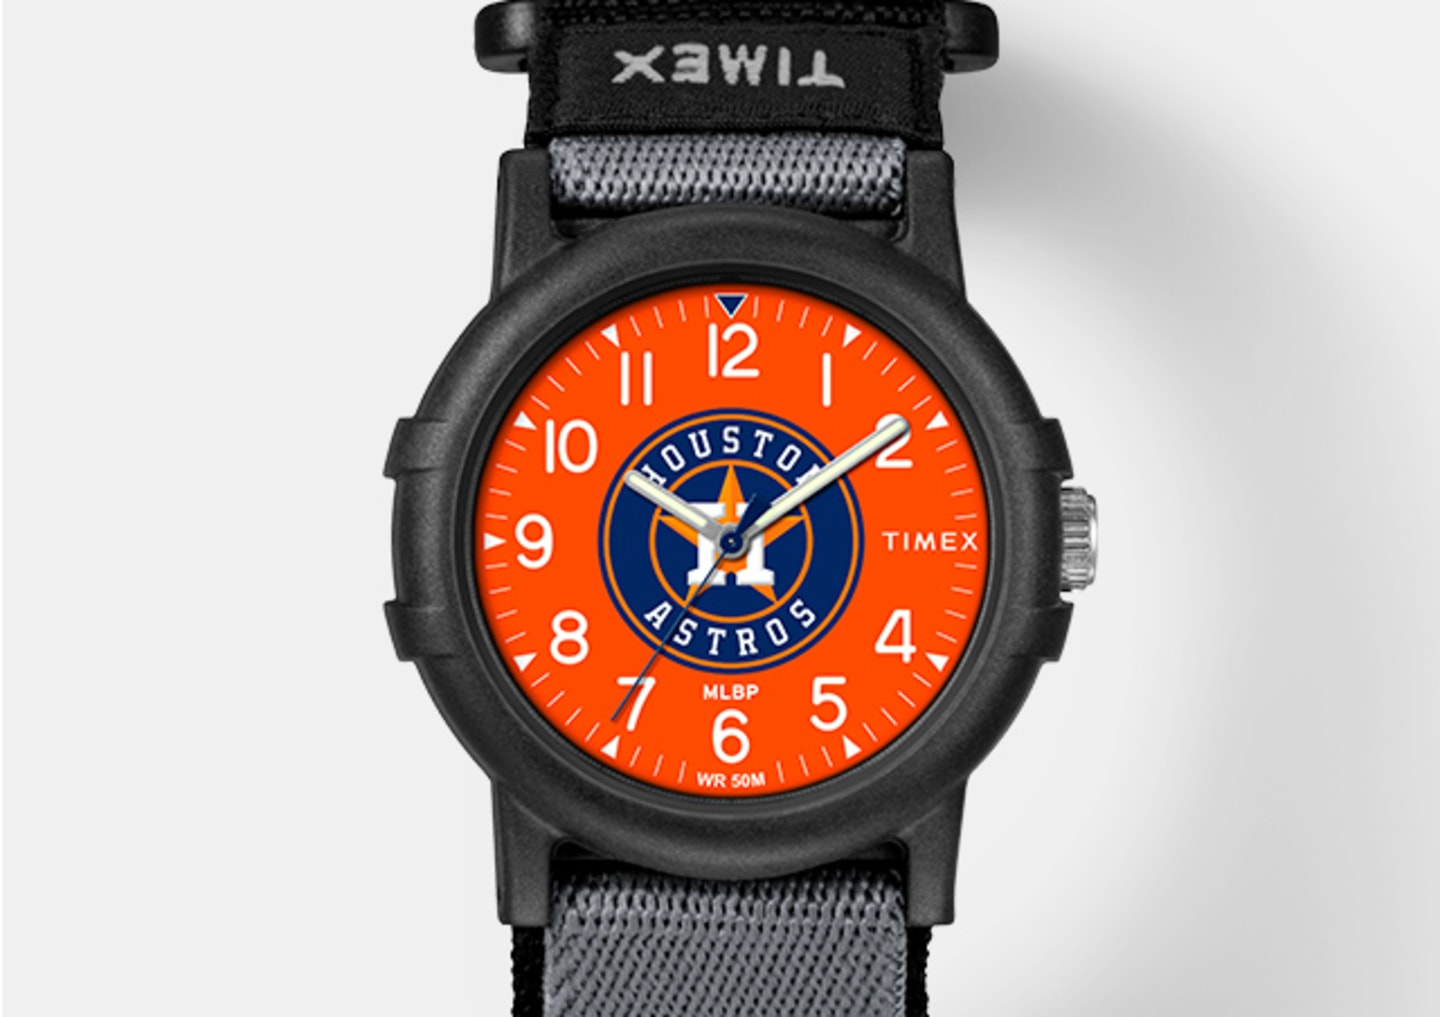 All Black Youth Watch With Orange Color and Astro's Logo In The Center